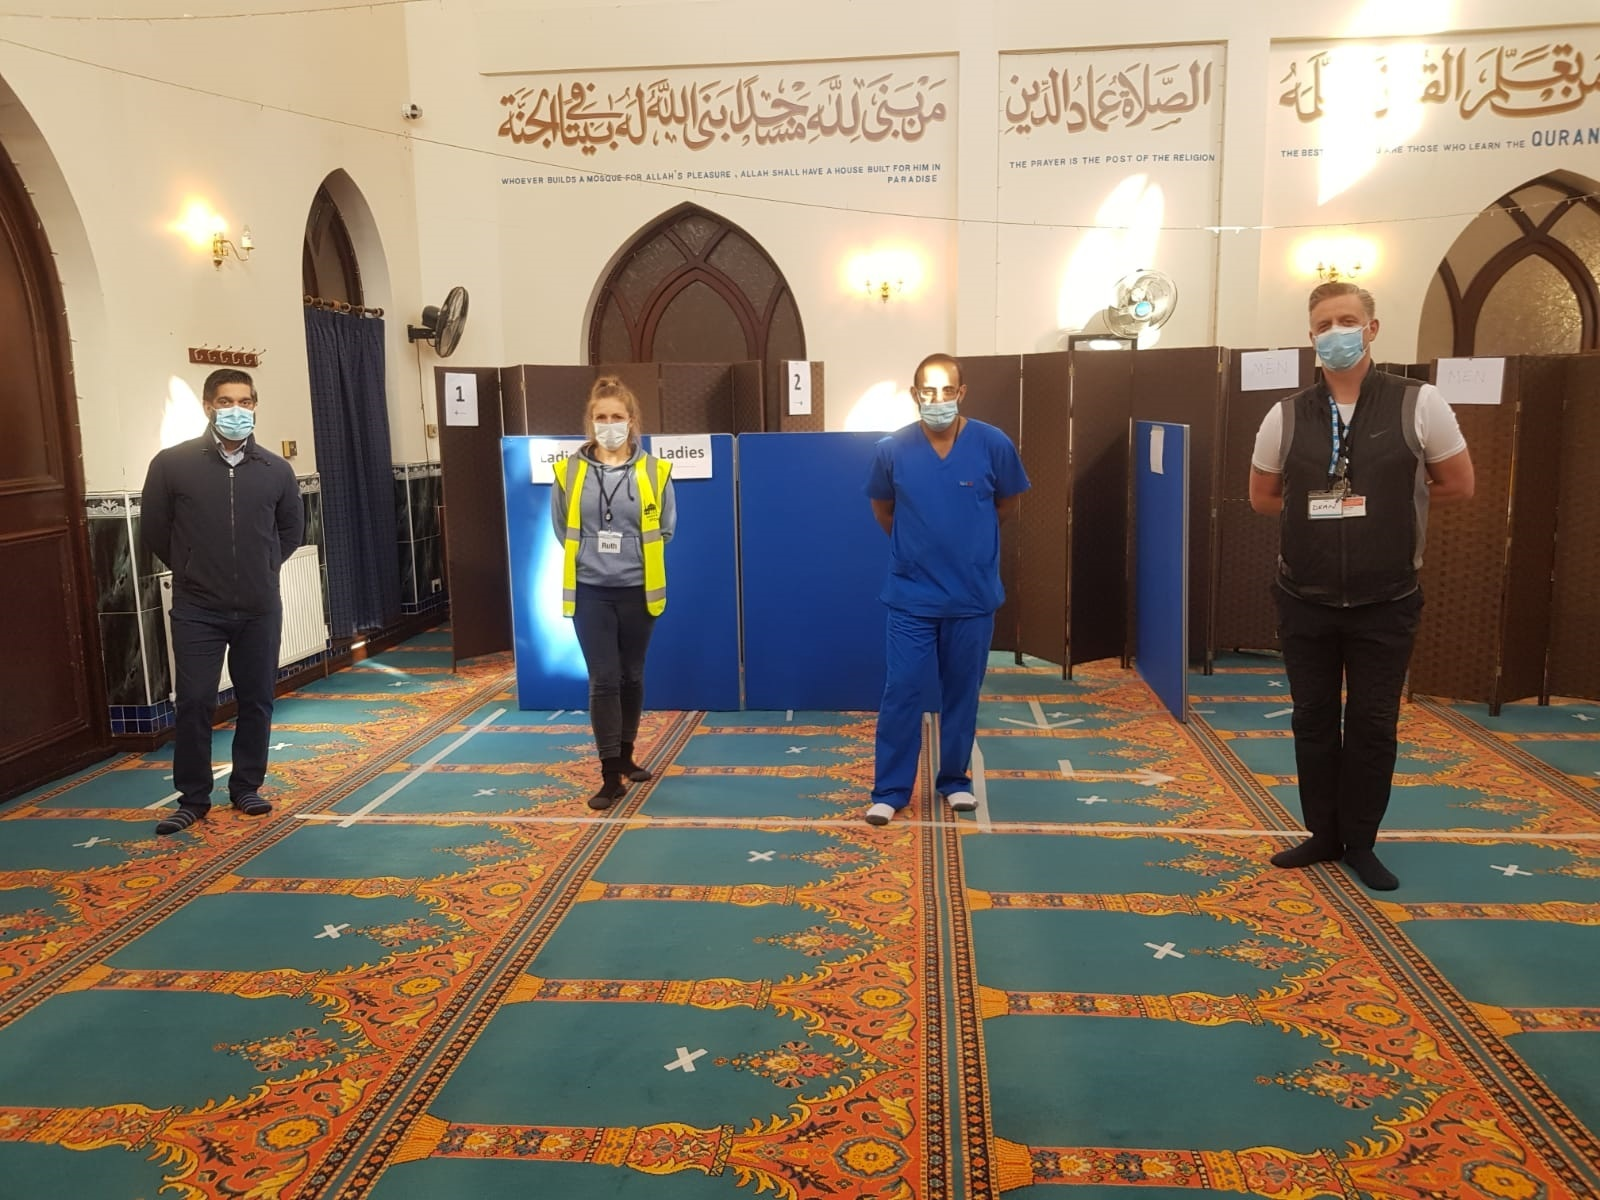 Members of the vaccination team visit Aylesbury Mosque